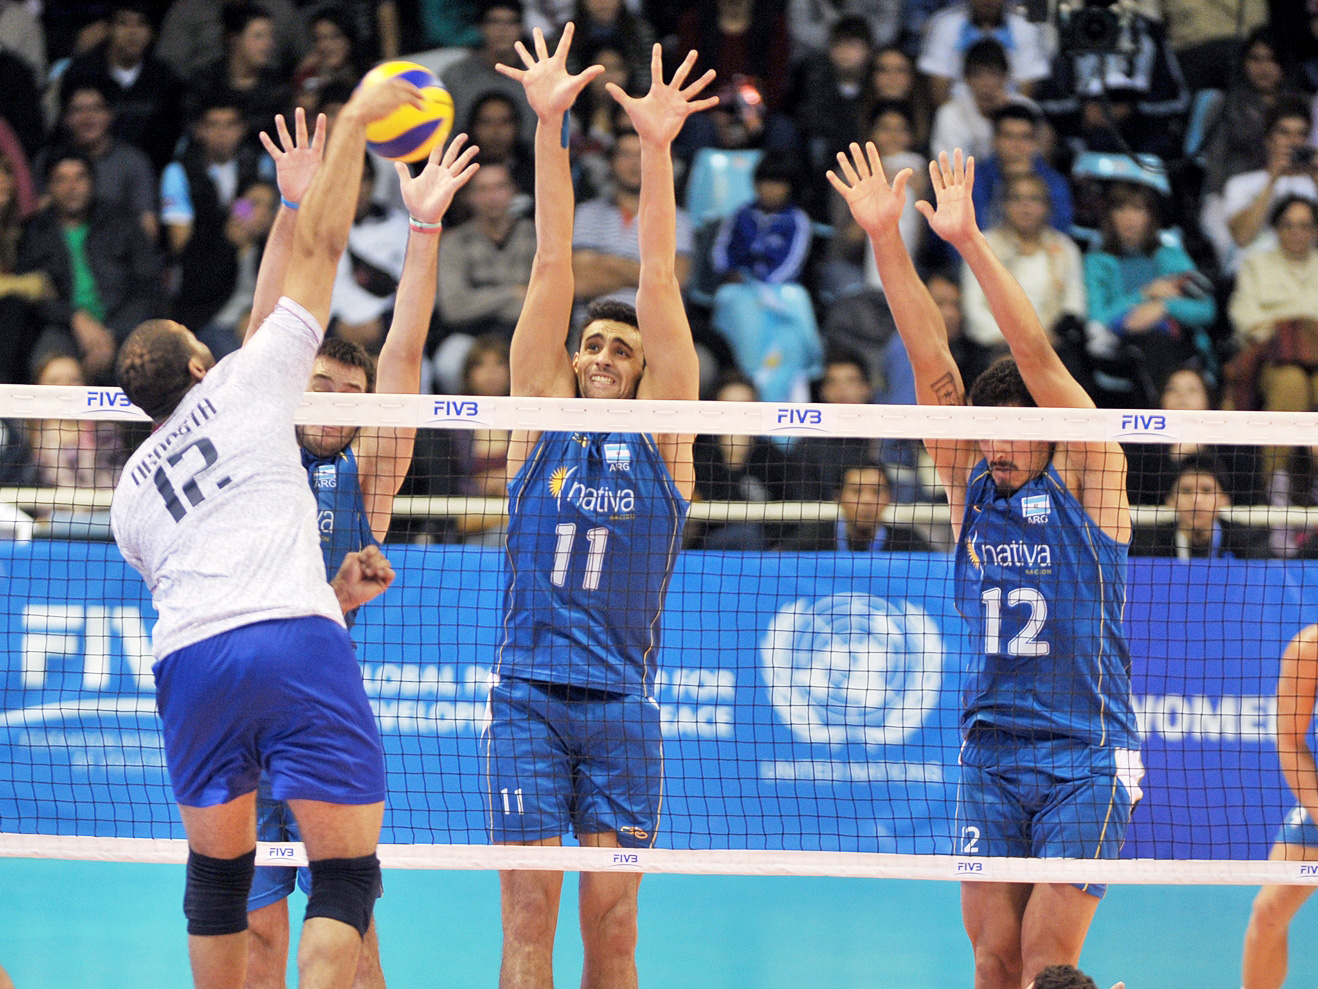 Mondial Volley-Ball: France vs Argentine en direct streaming sur beIN Sports à partir de 16h40